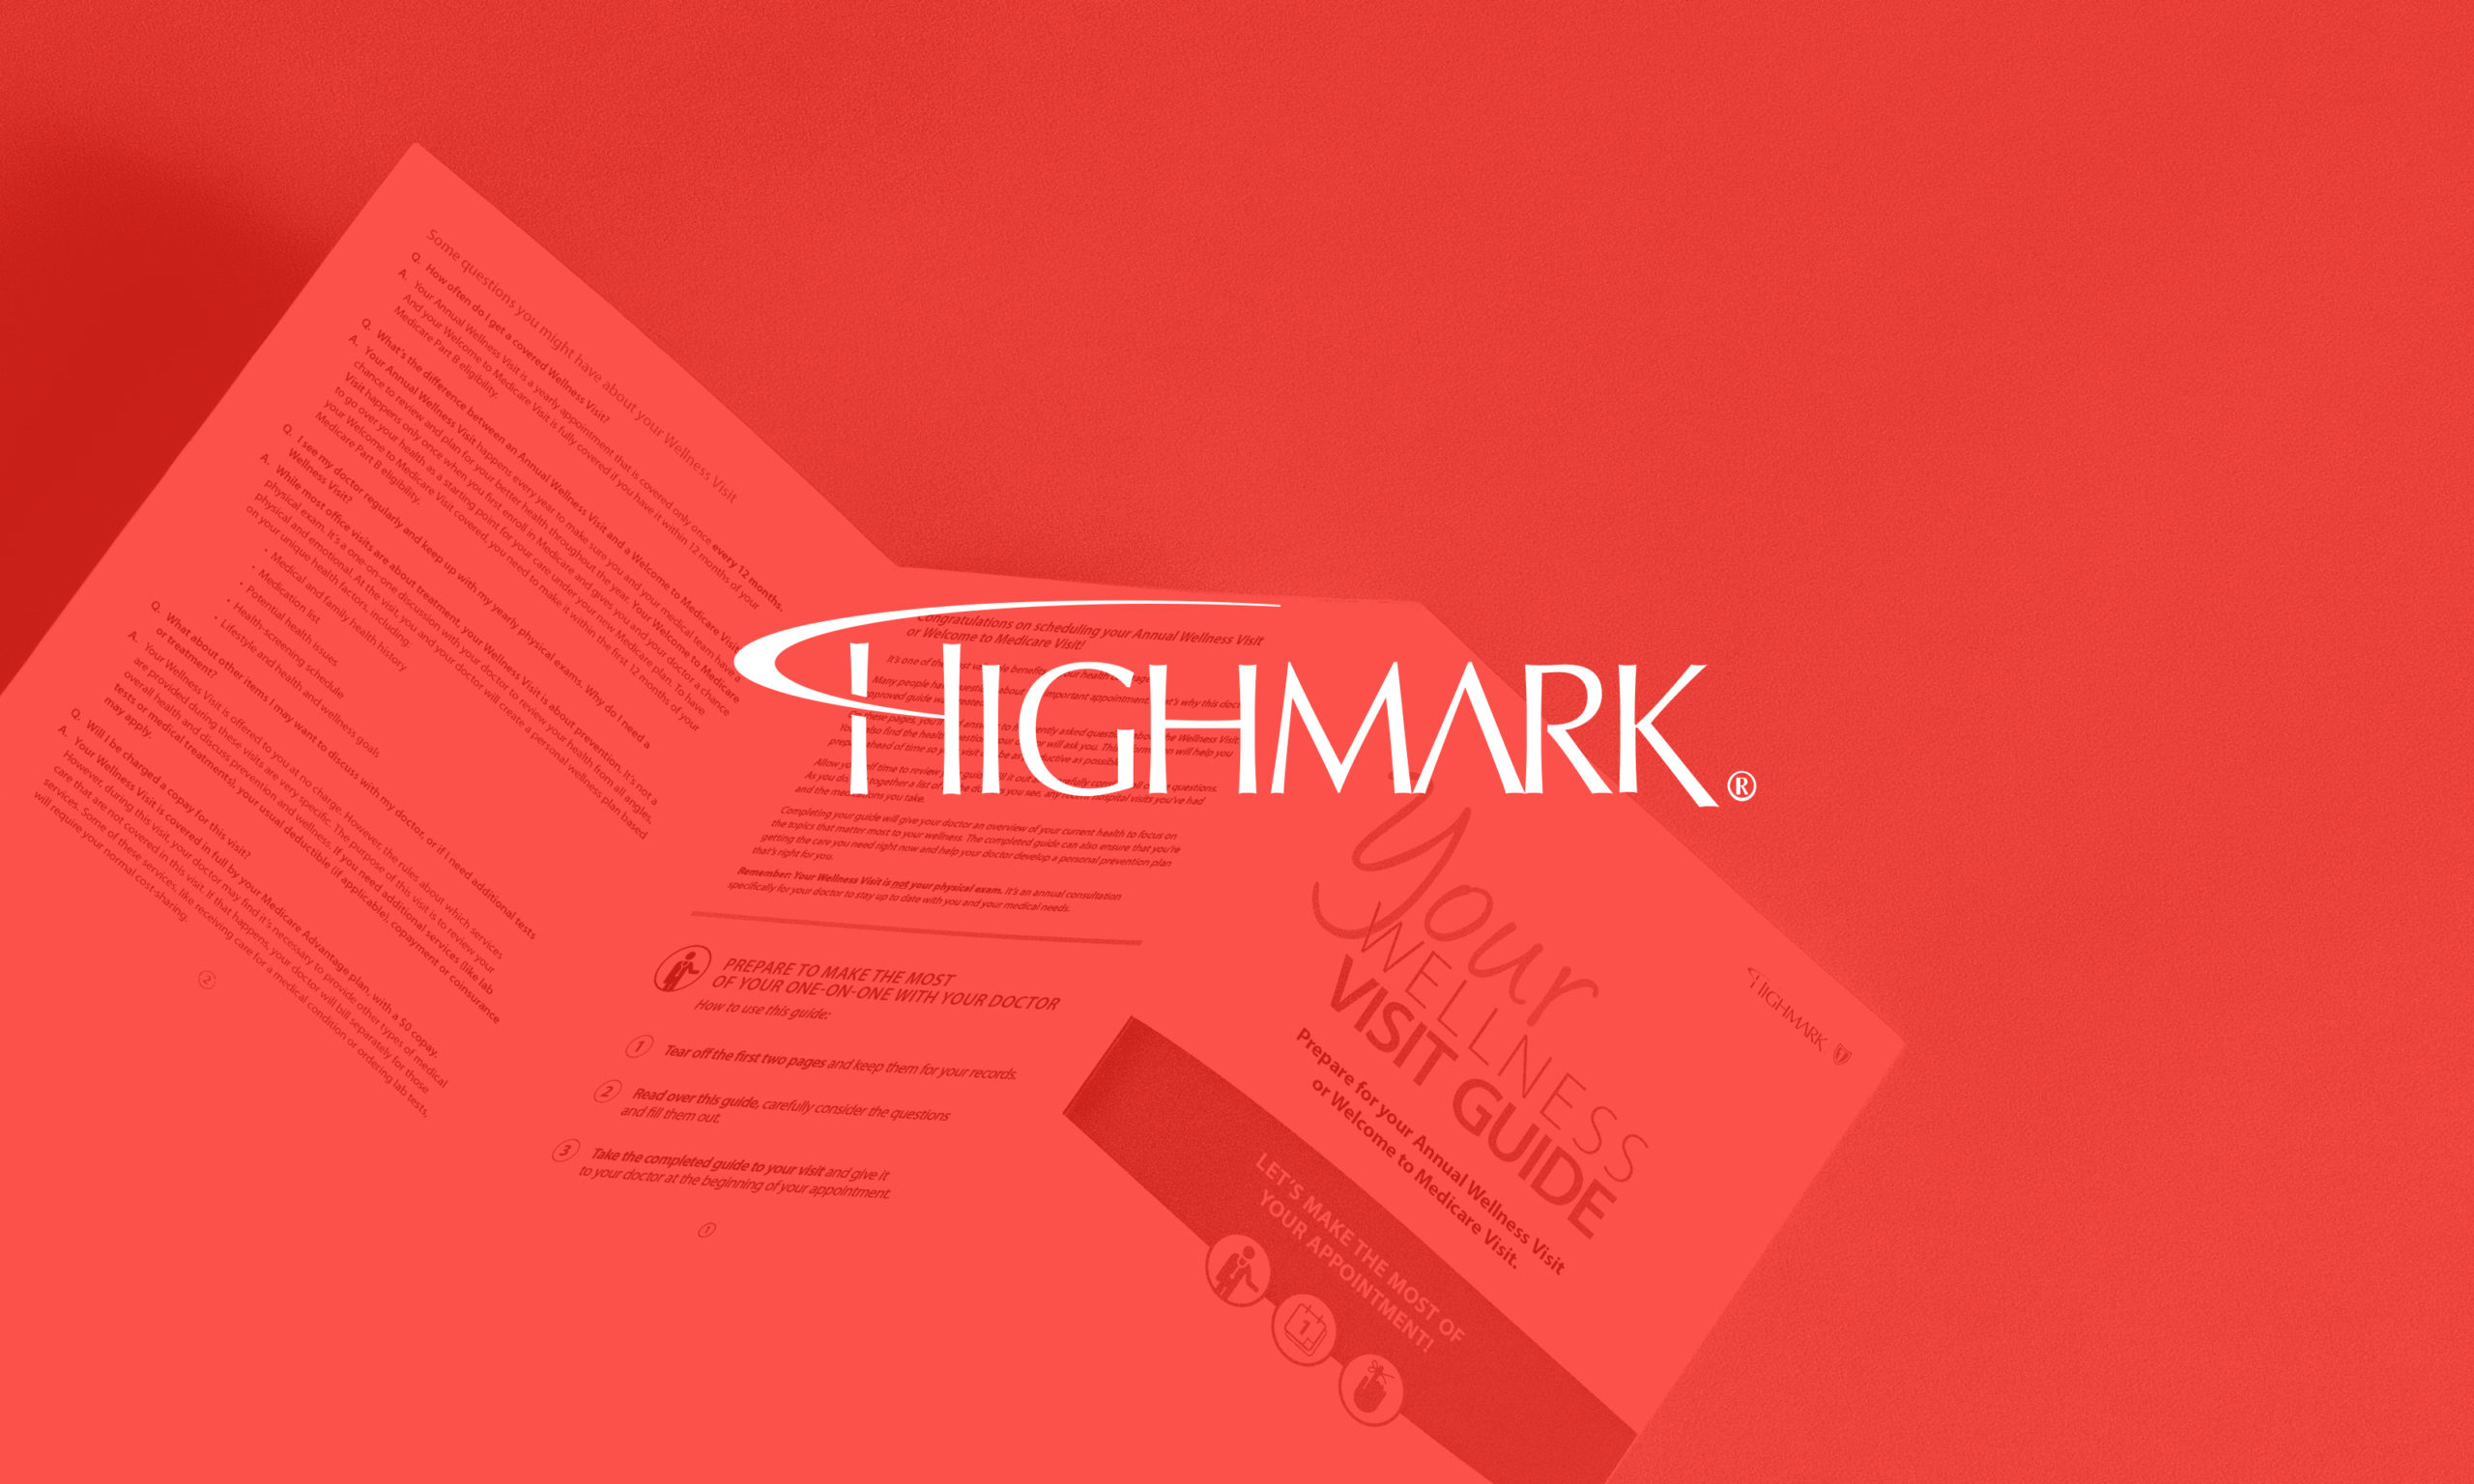 highmark_Red